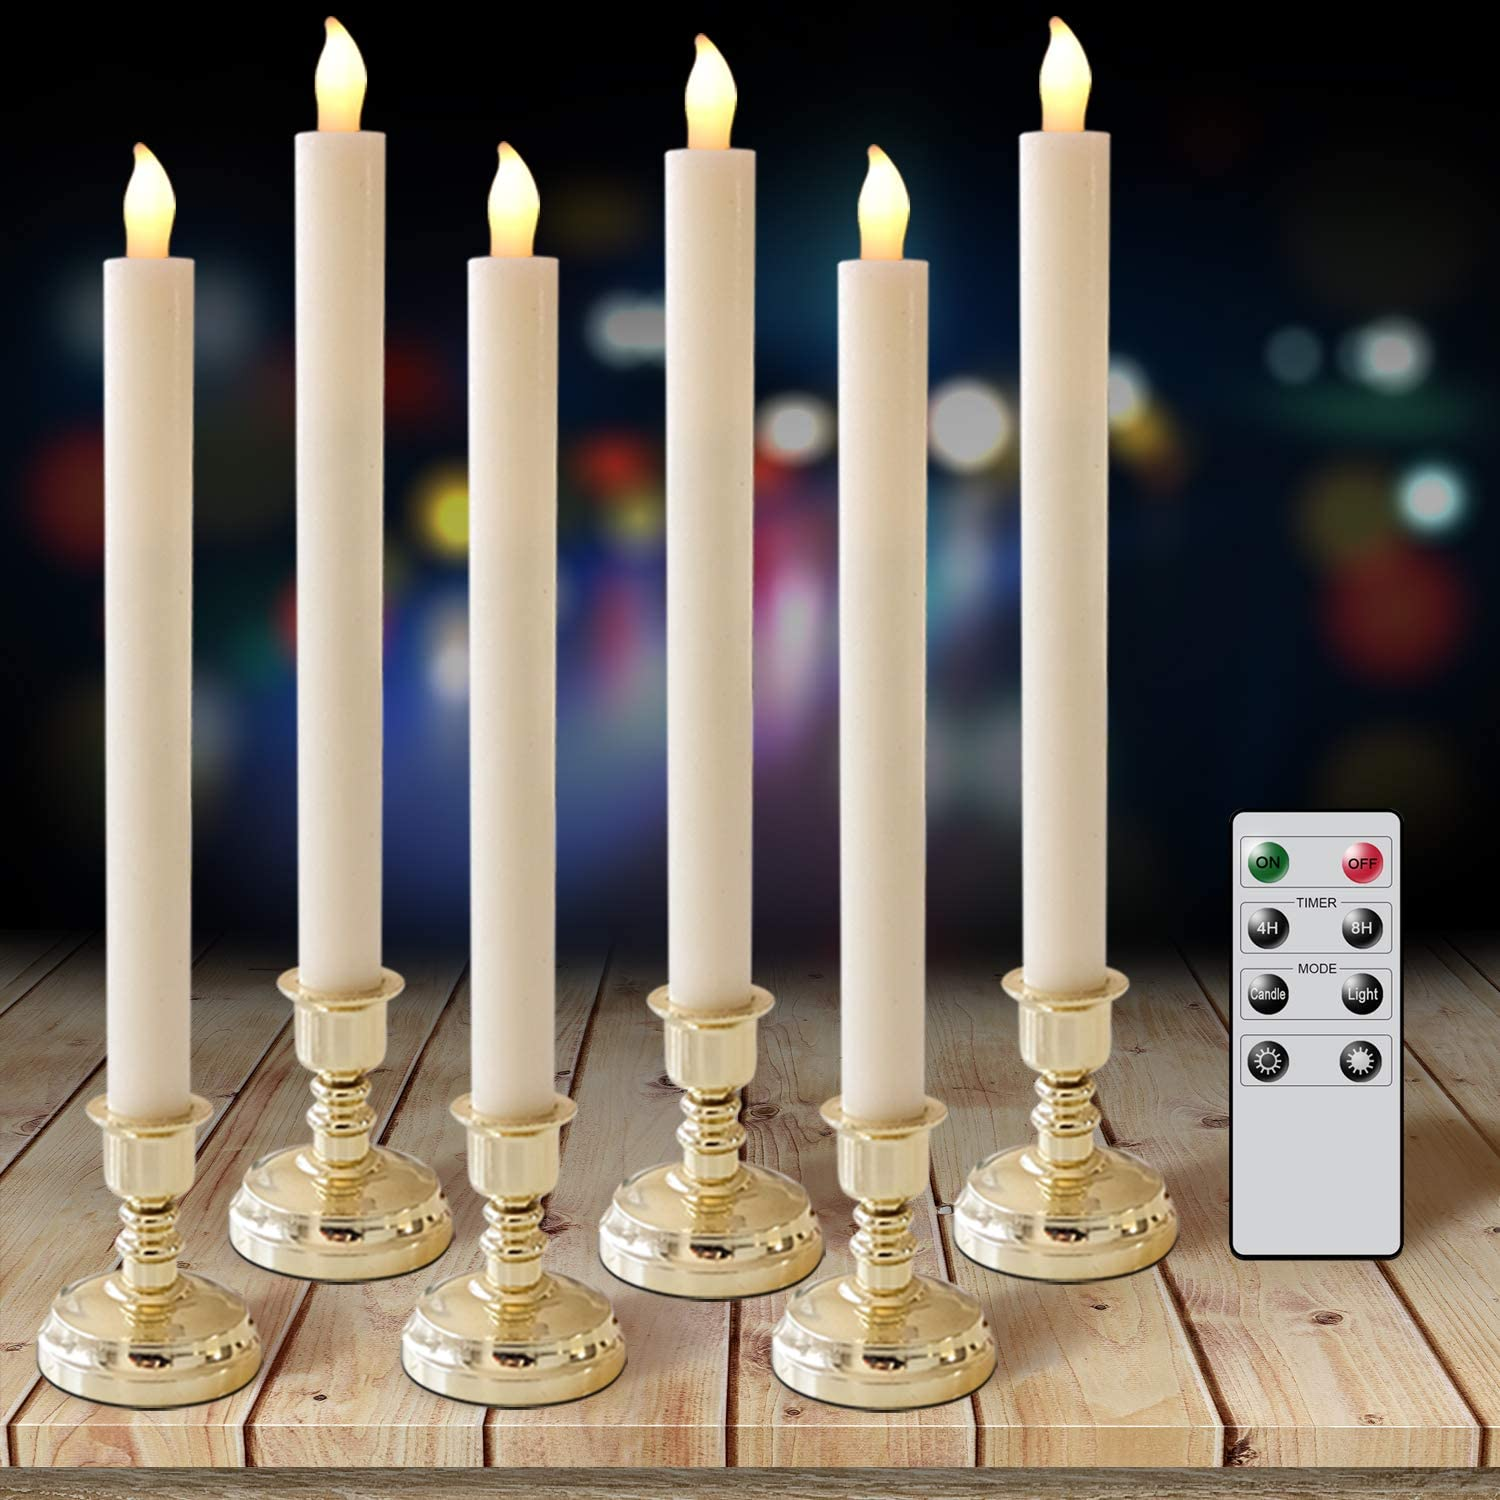 Eldnacele Flameless Taper Candles Battery Operated Led Window Candles With Remote Timer Set Of 6 Real Wax Warm White Candles Dripless For Decoration Ivory Amazon Co Uk Lighting